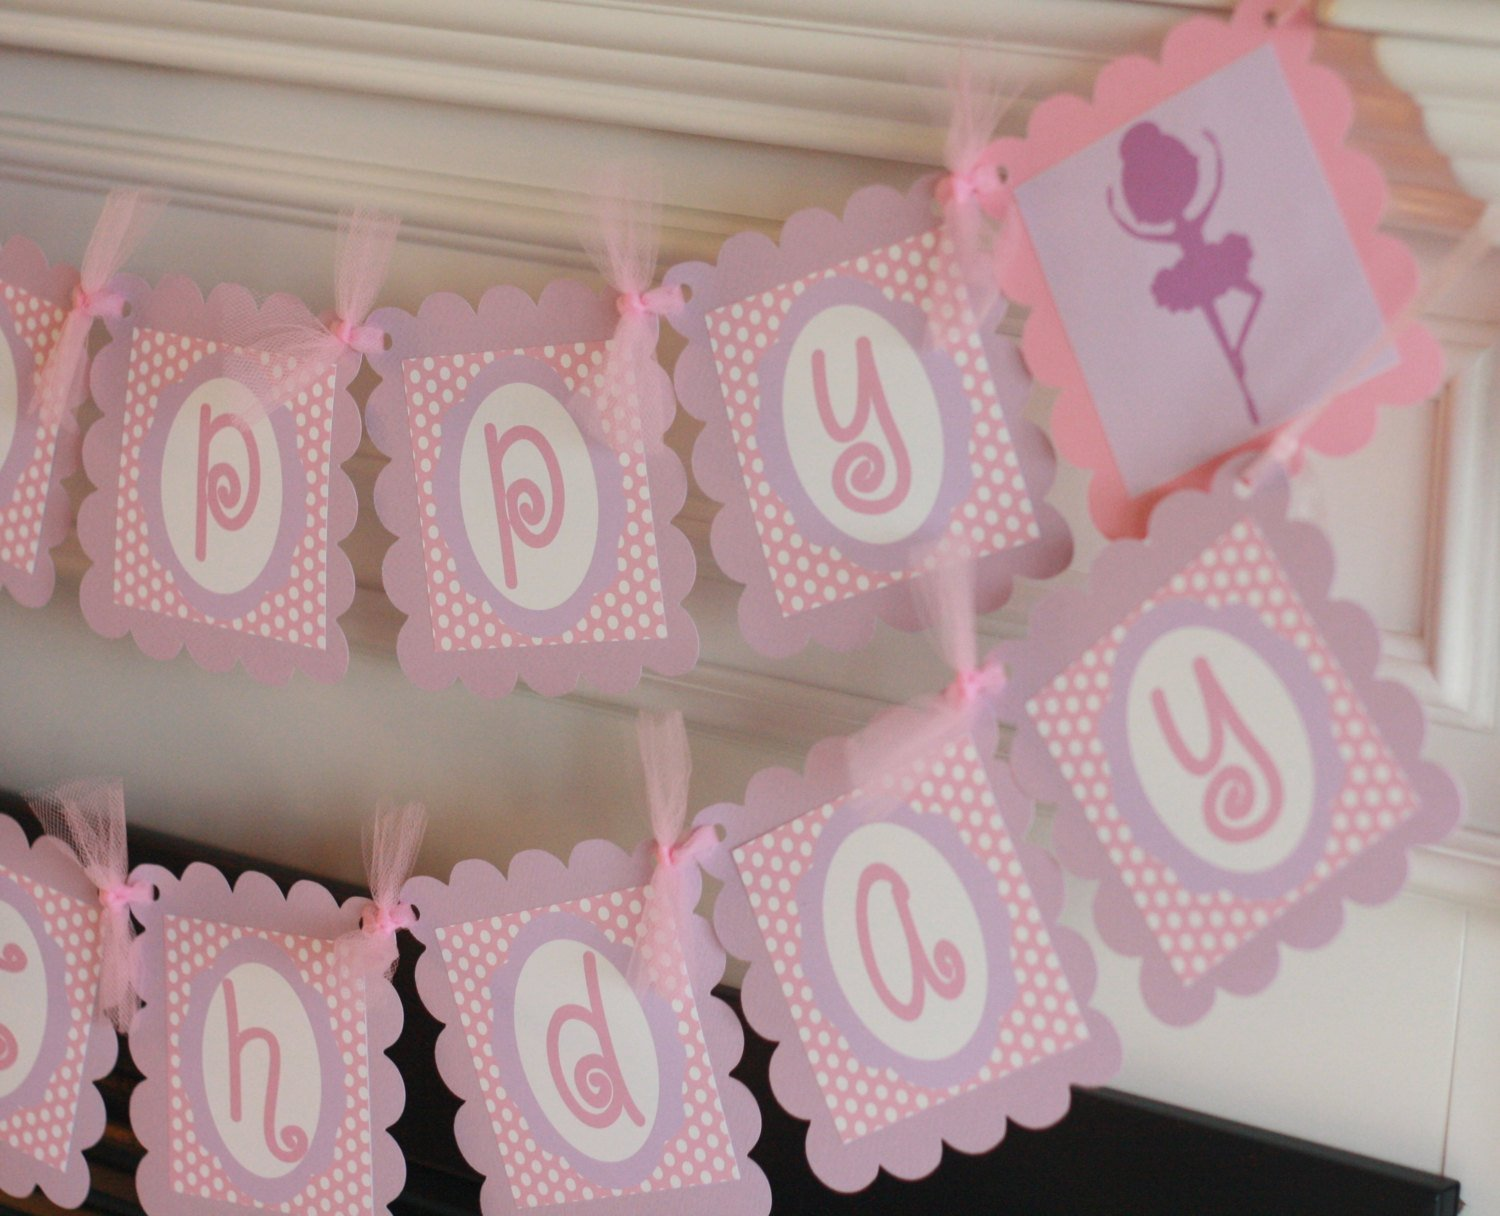 Happy Birthday Girl Pink Purple Polka Dot Ballet Ballerina Dance Dancer Silhouette - Party Pack Specials Matching Items Available - Signs, Favor Tags, Cupcake Toppers etc.